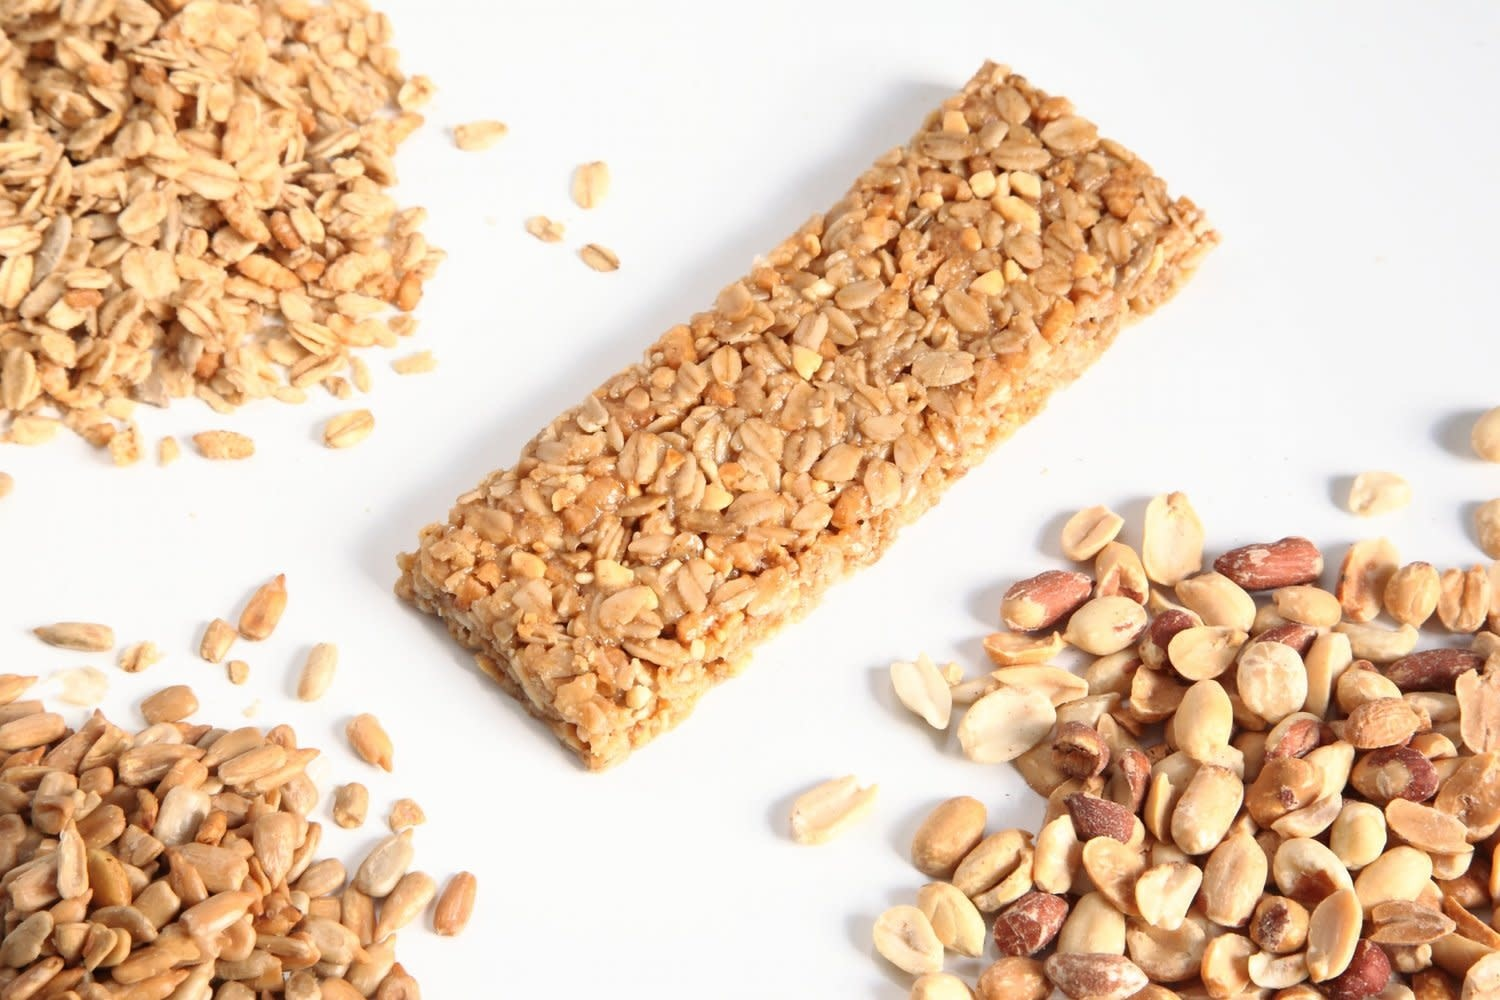 Lenka Peanut Butter & Sea Salt Bar with Organic Granola, Pennsylvania